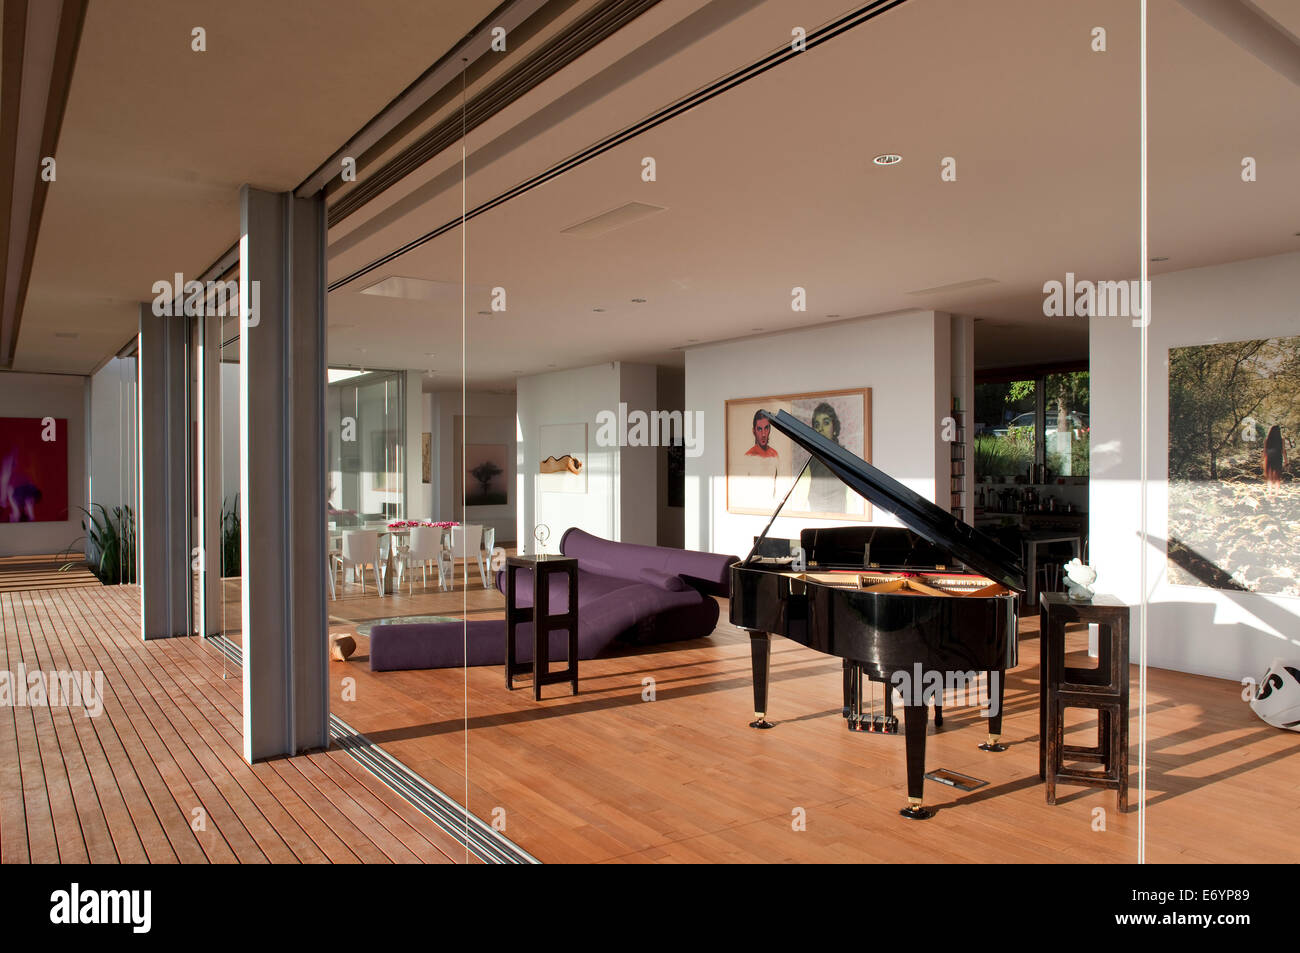 view-into-luxury-room-with-grand-piano-l-house-israel-middle-east-E6YP89.jpg